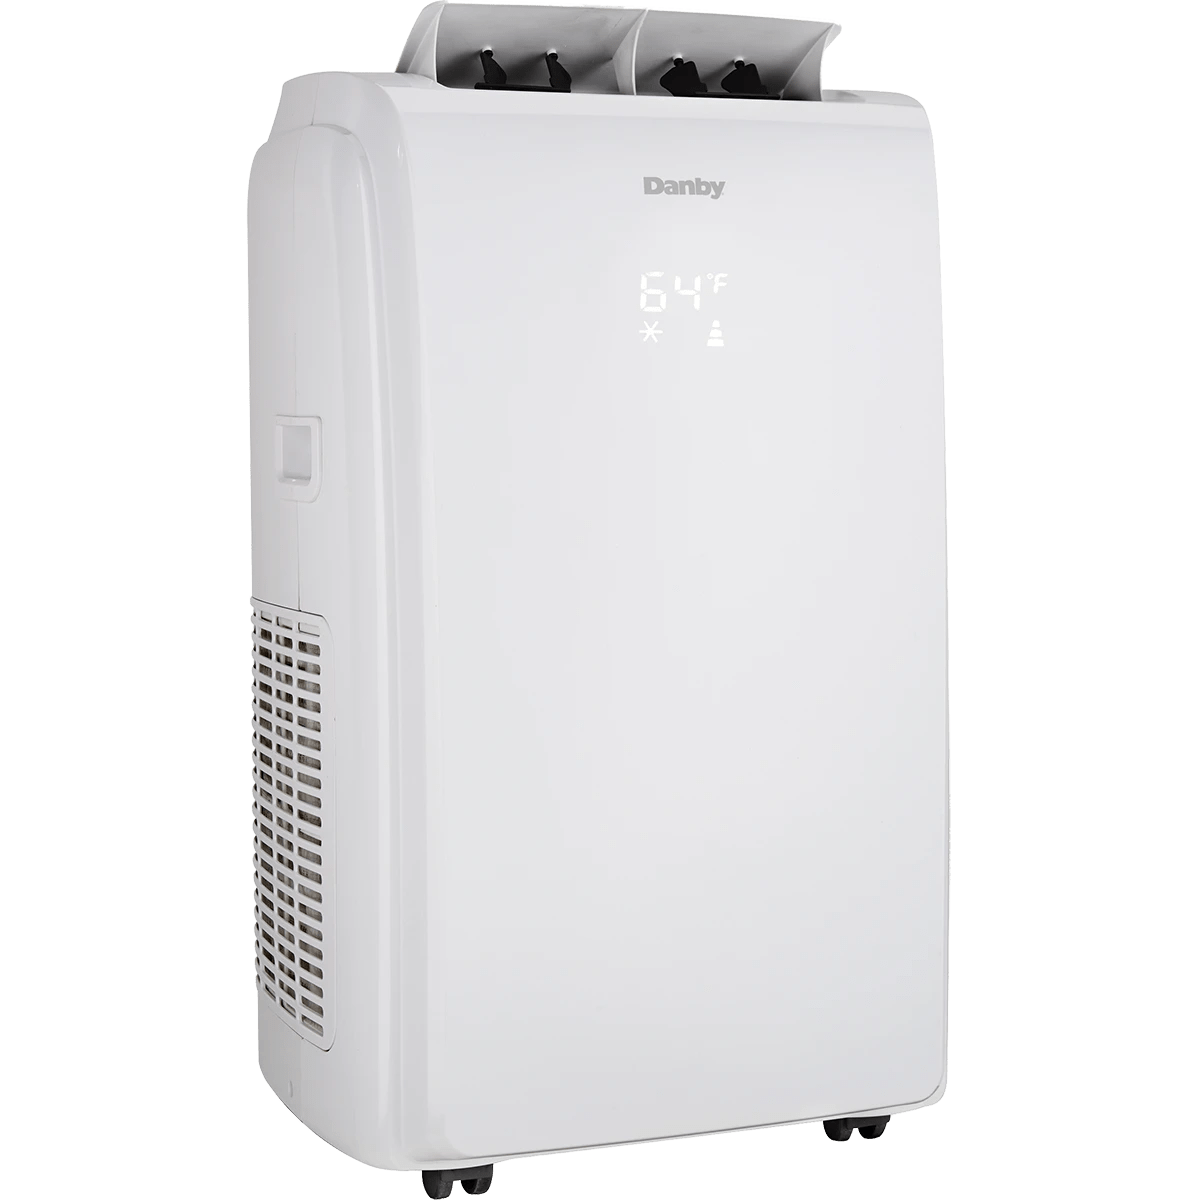 Climatiseur Uberhaus Portable Air Conditioners Danby Portable Air Conditioners